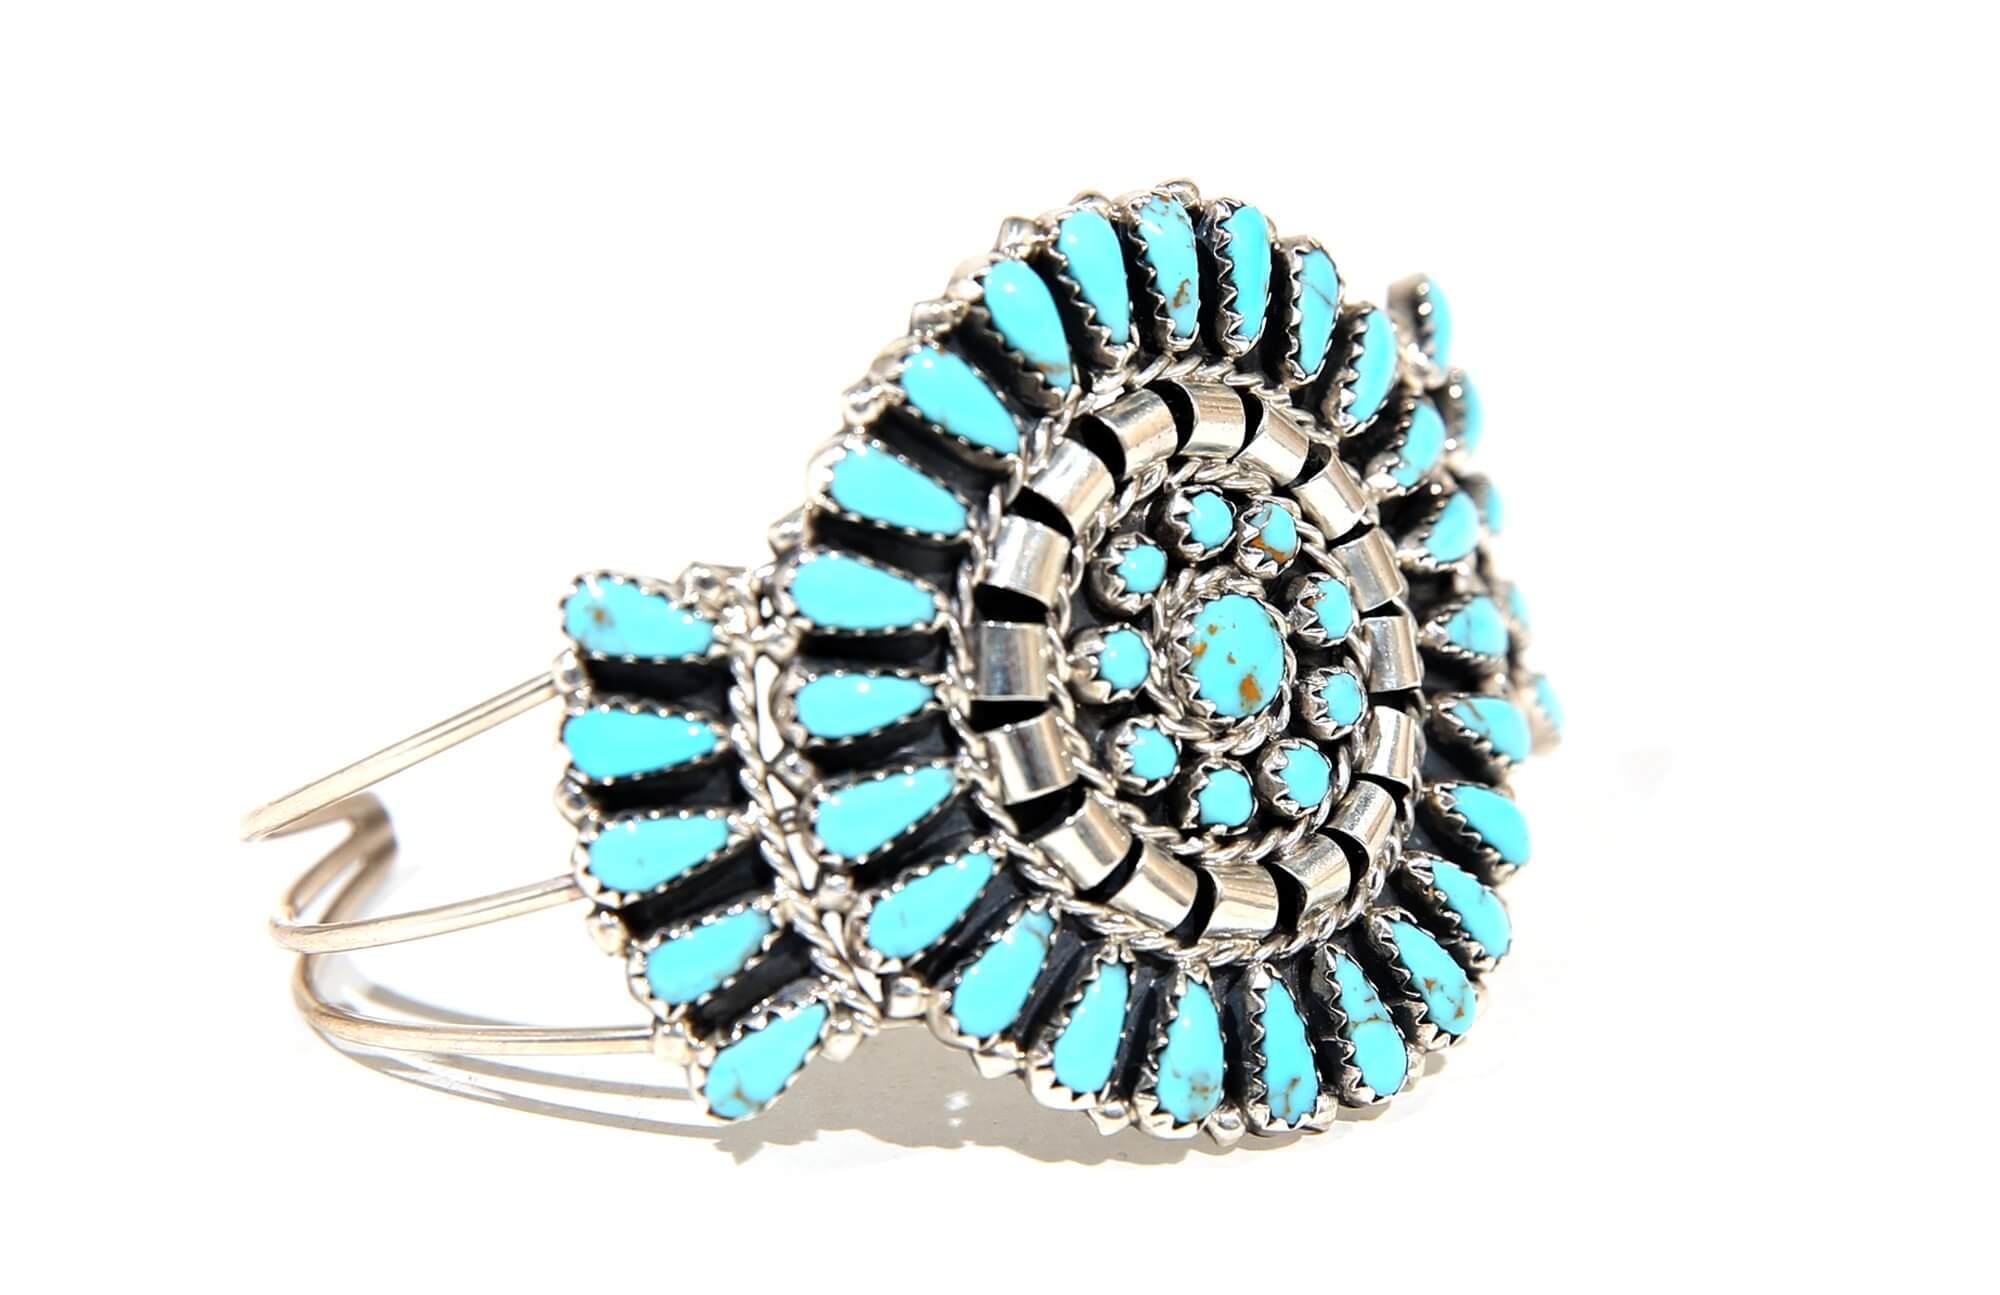 Image of Native American turquoise bangle